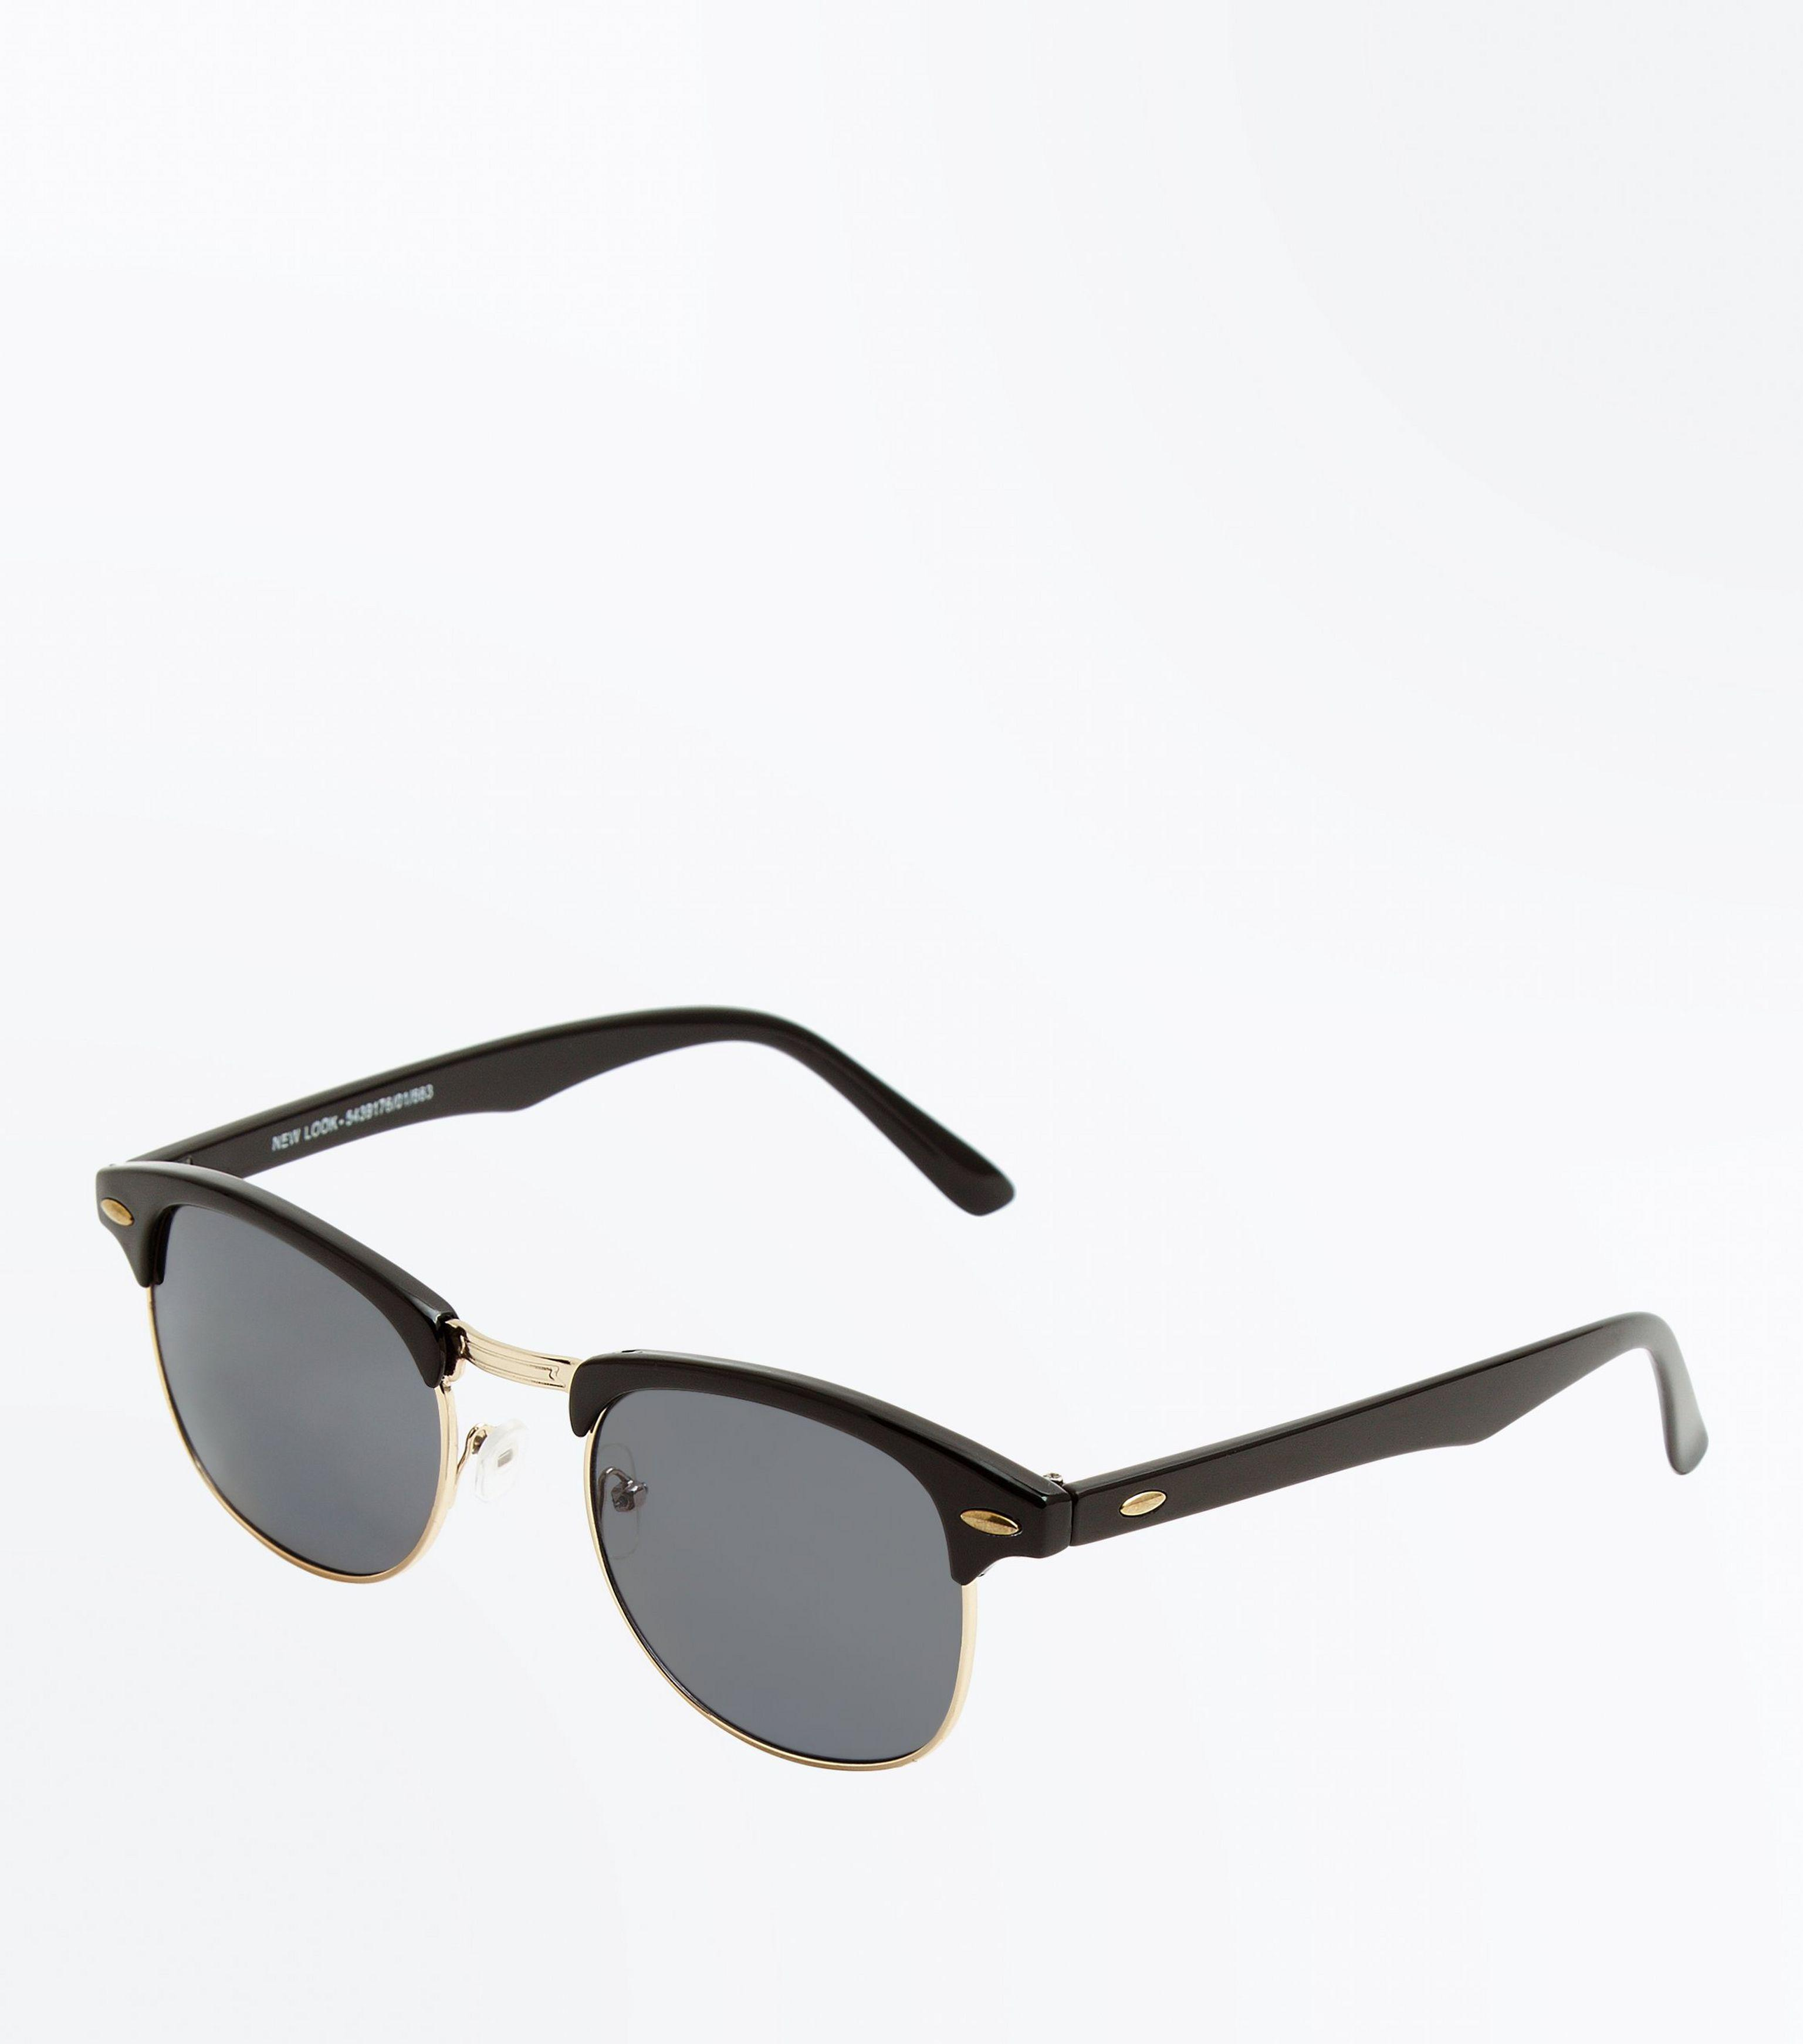 9237a9ce50 New Look Black Oval Detail Sunglasses in Black - Lyst